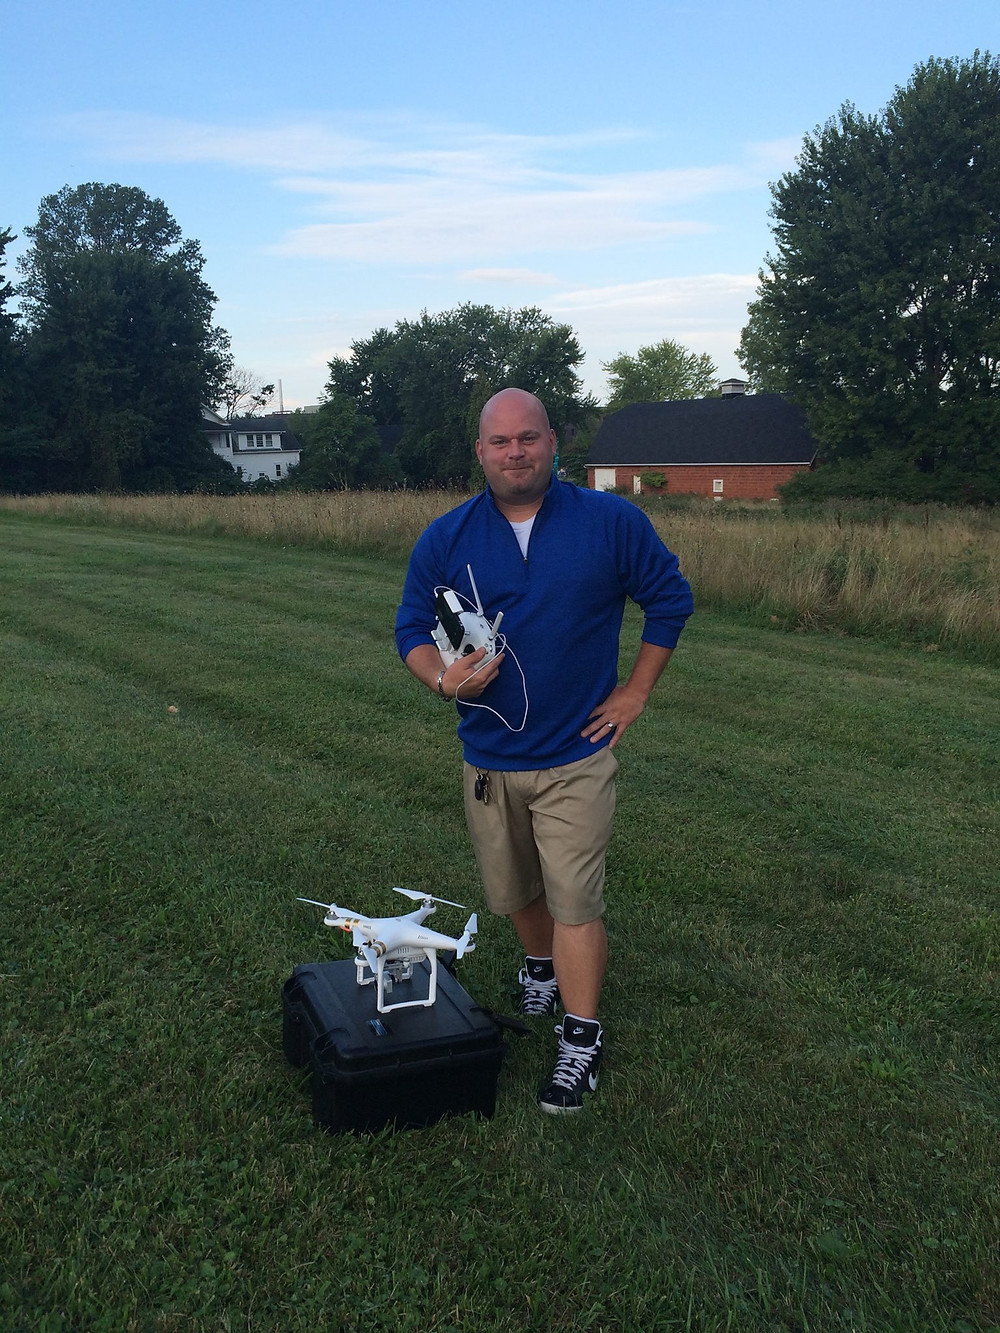 Tom Wasinski holding remote control gear and standing next to his drone.